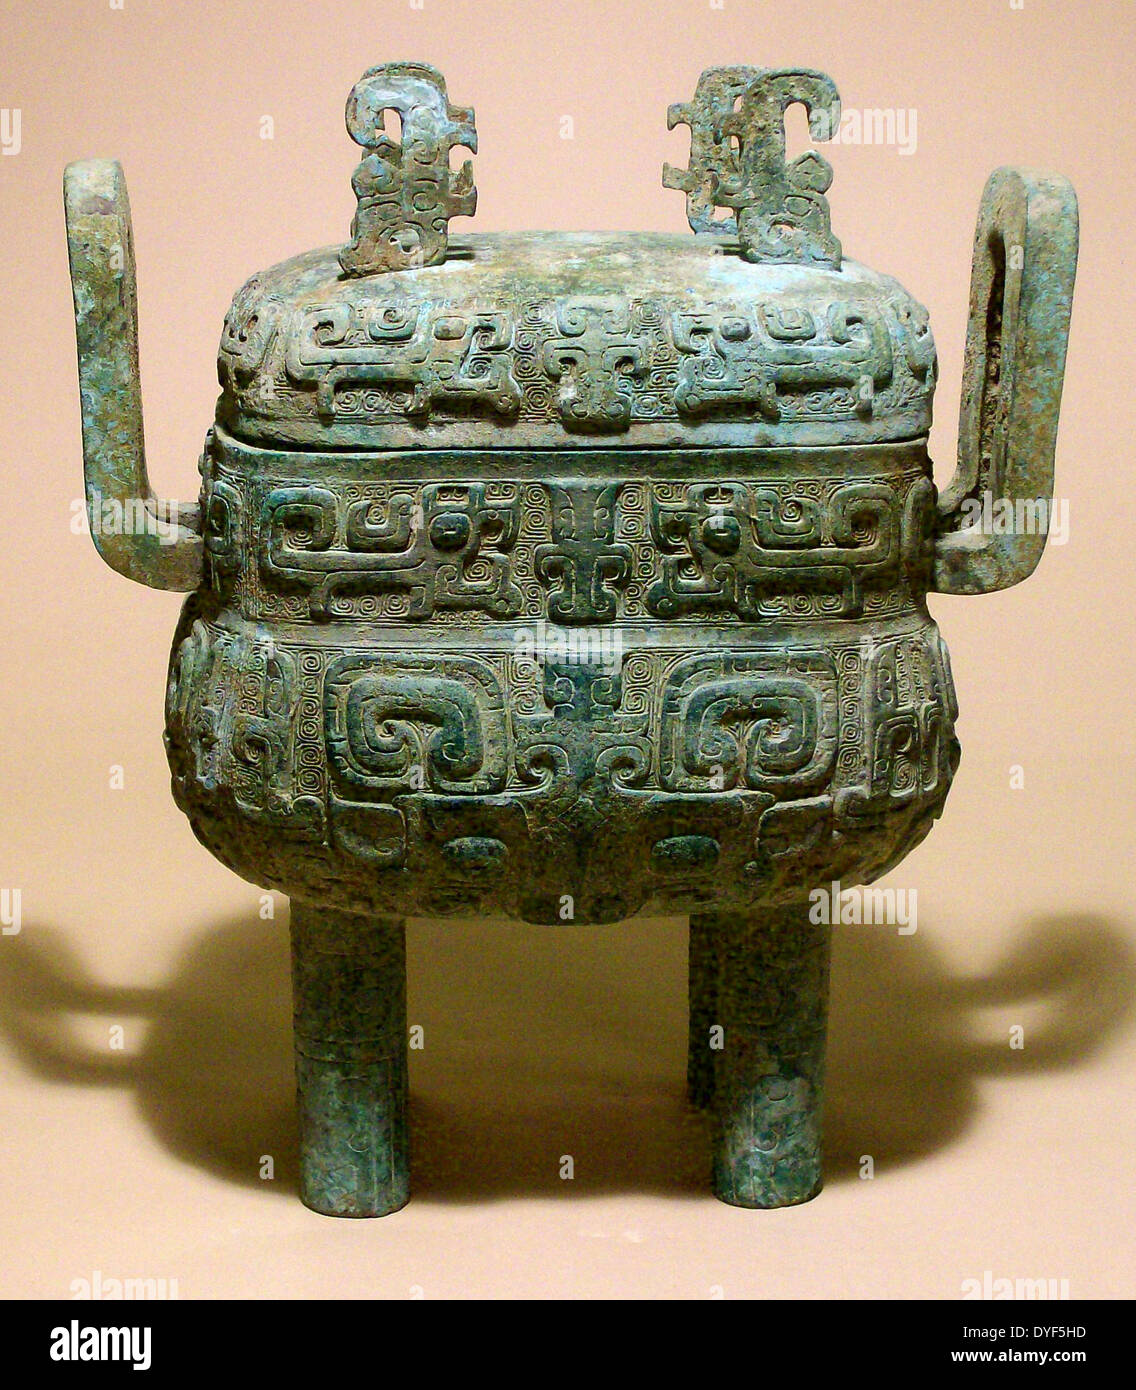 Ancient China: Cooking vessel with lid (Fang Ding), Shang Dynasty, 1600 - 1027 BC. Bronze. - Stock Image